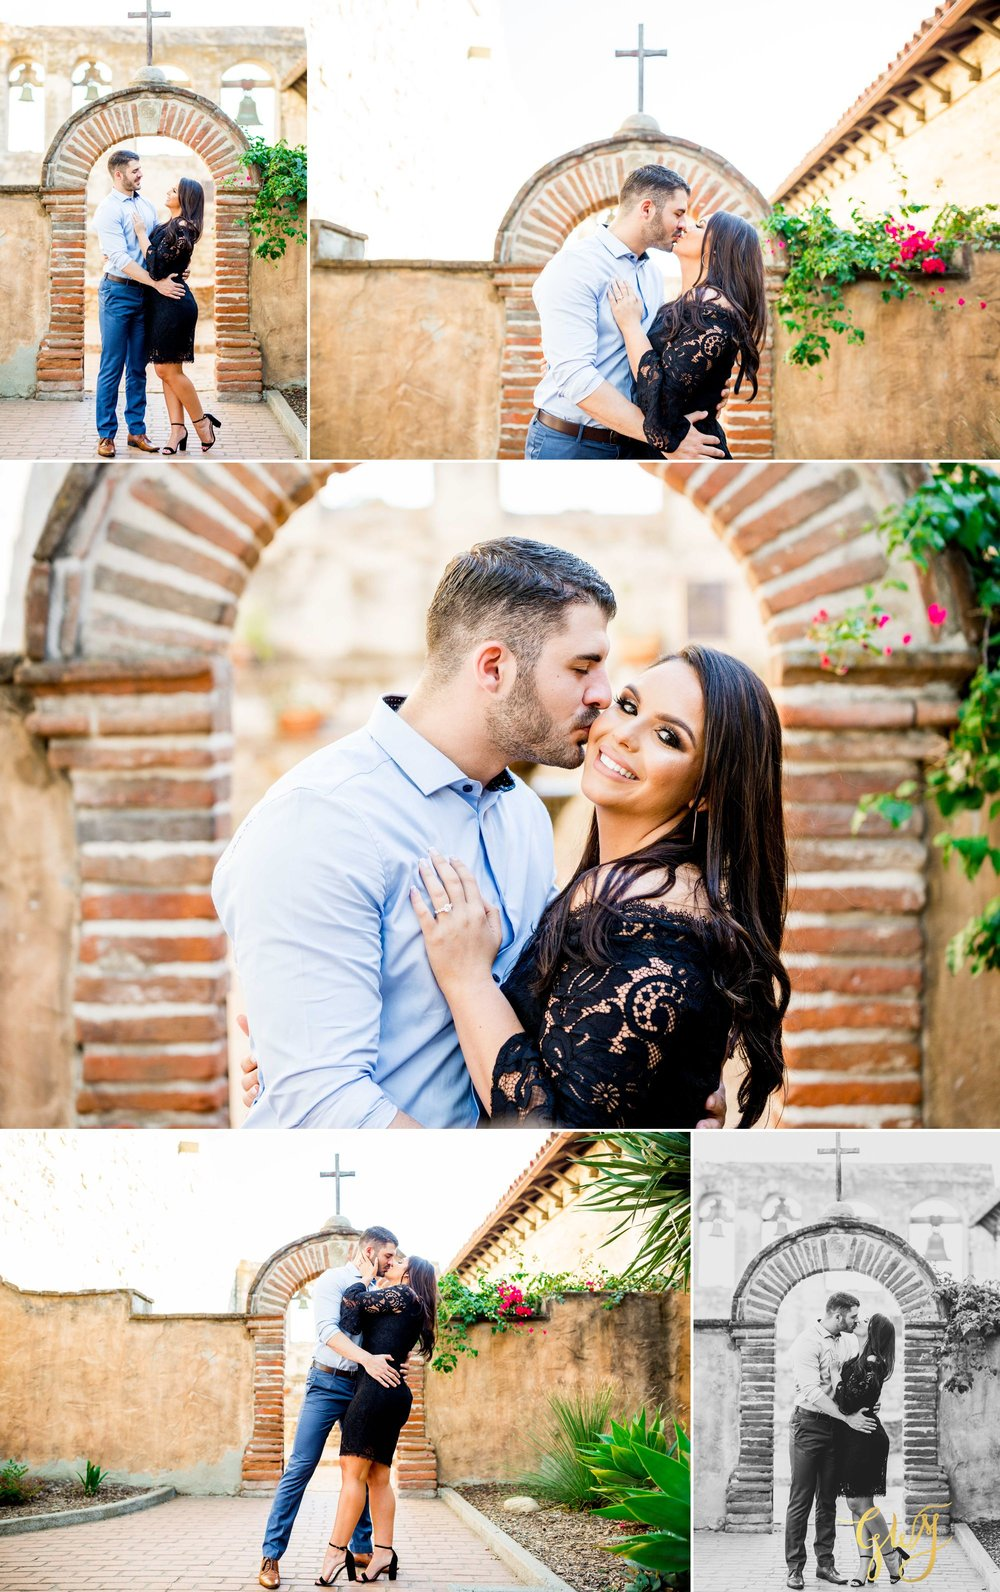 Alejandro + Rachel Mission San Juan Capistrano Strands Beach Dana Point Sunset Engagement by Glass Woods Media 4.jpg